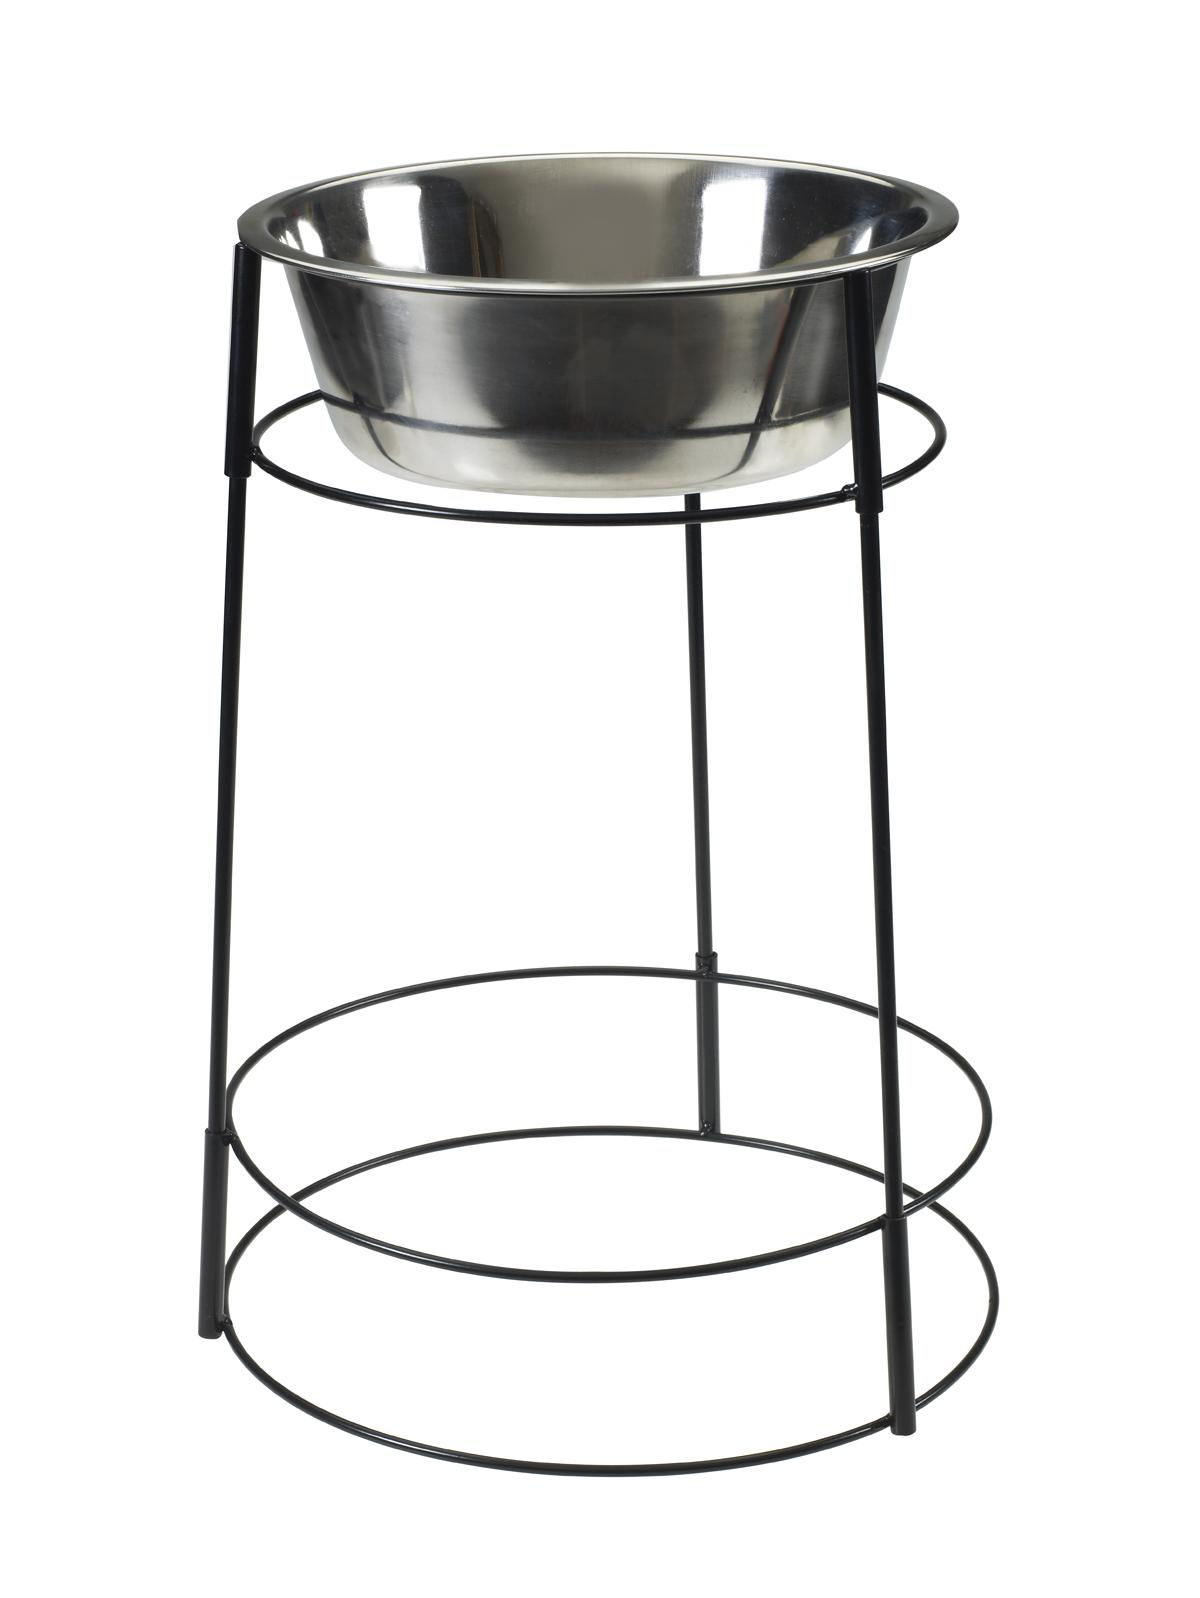 Ethical Pet Spot Hi-Rise Single Diner, 2-quart (Size: 2-quart) Image